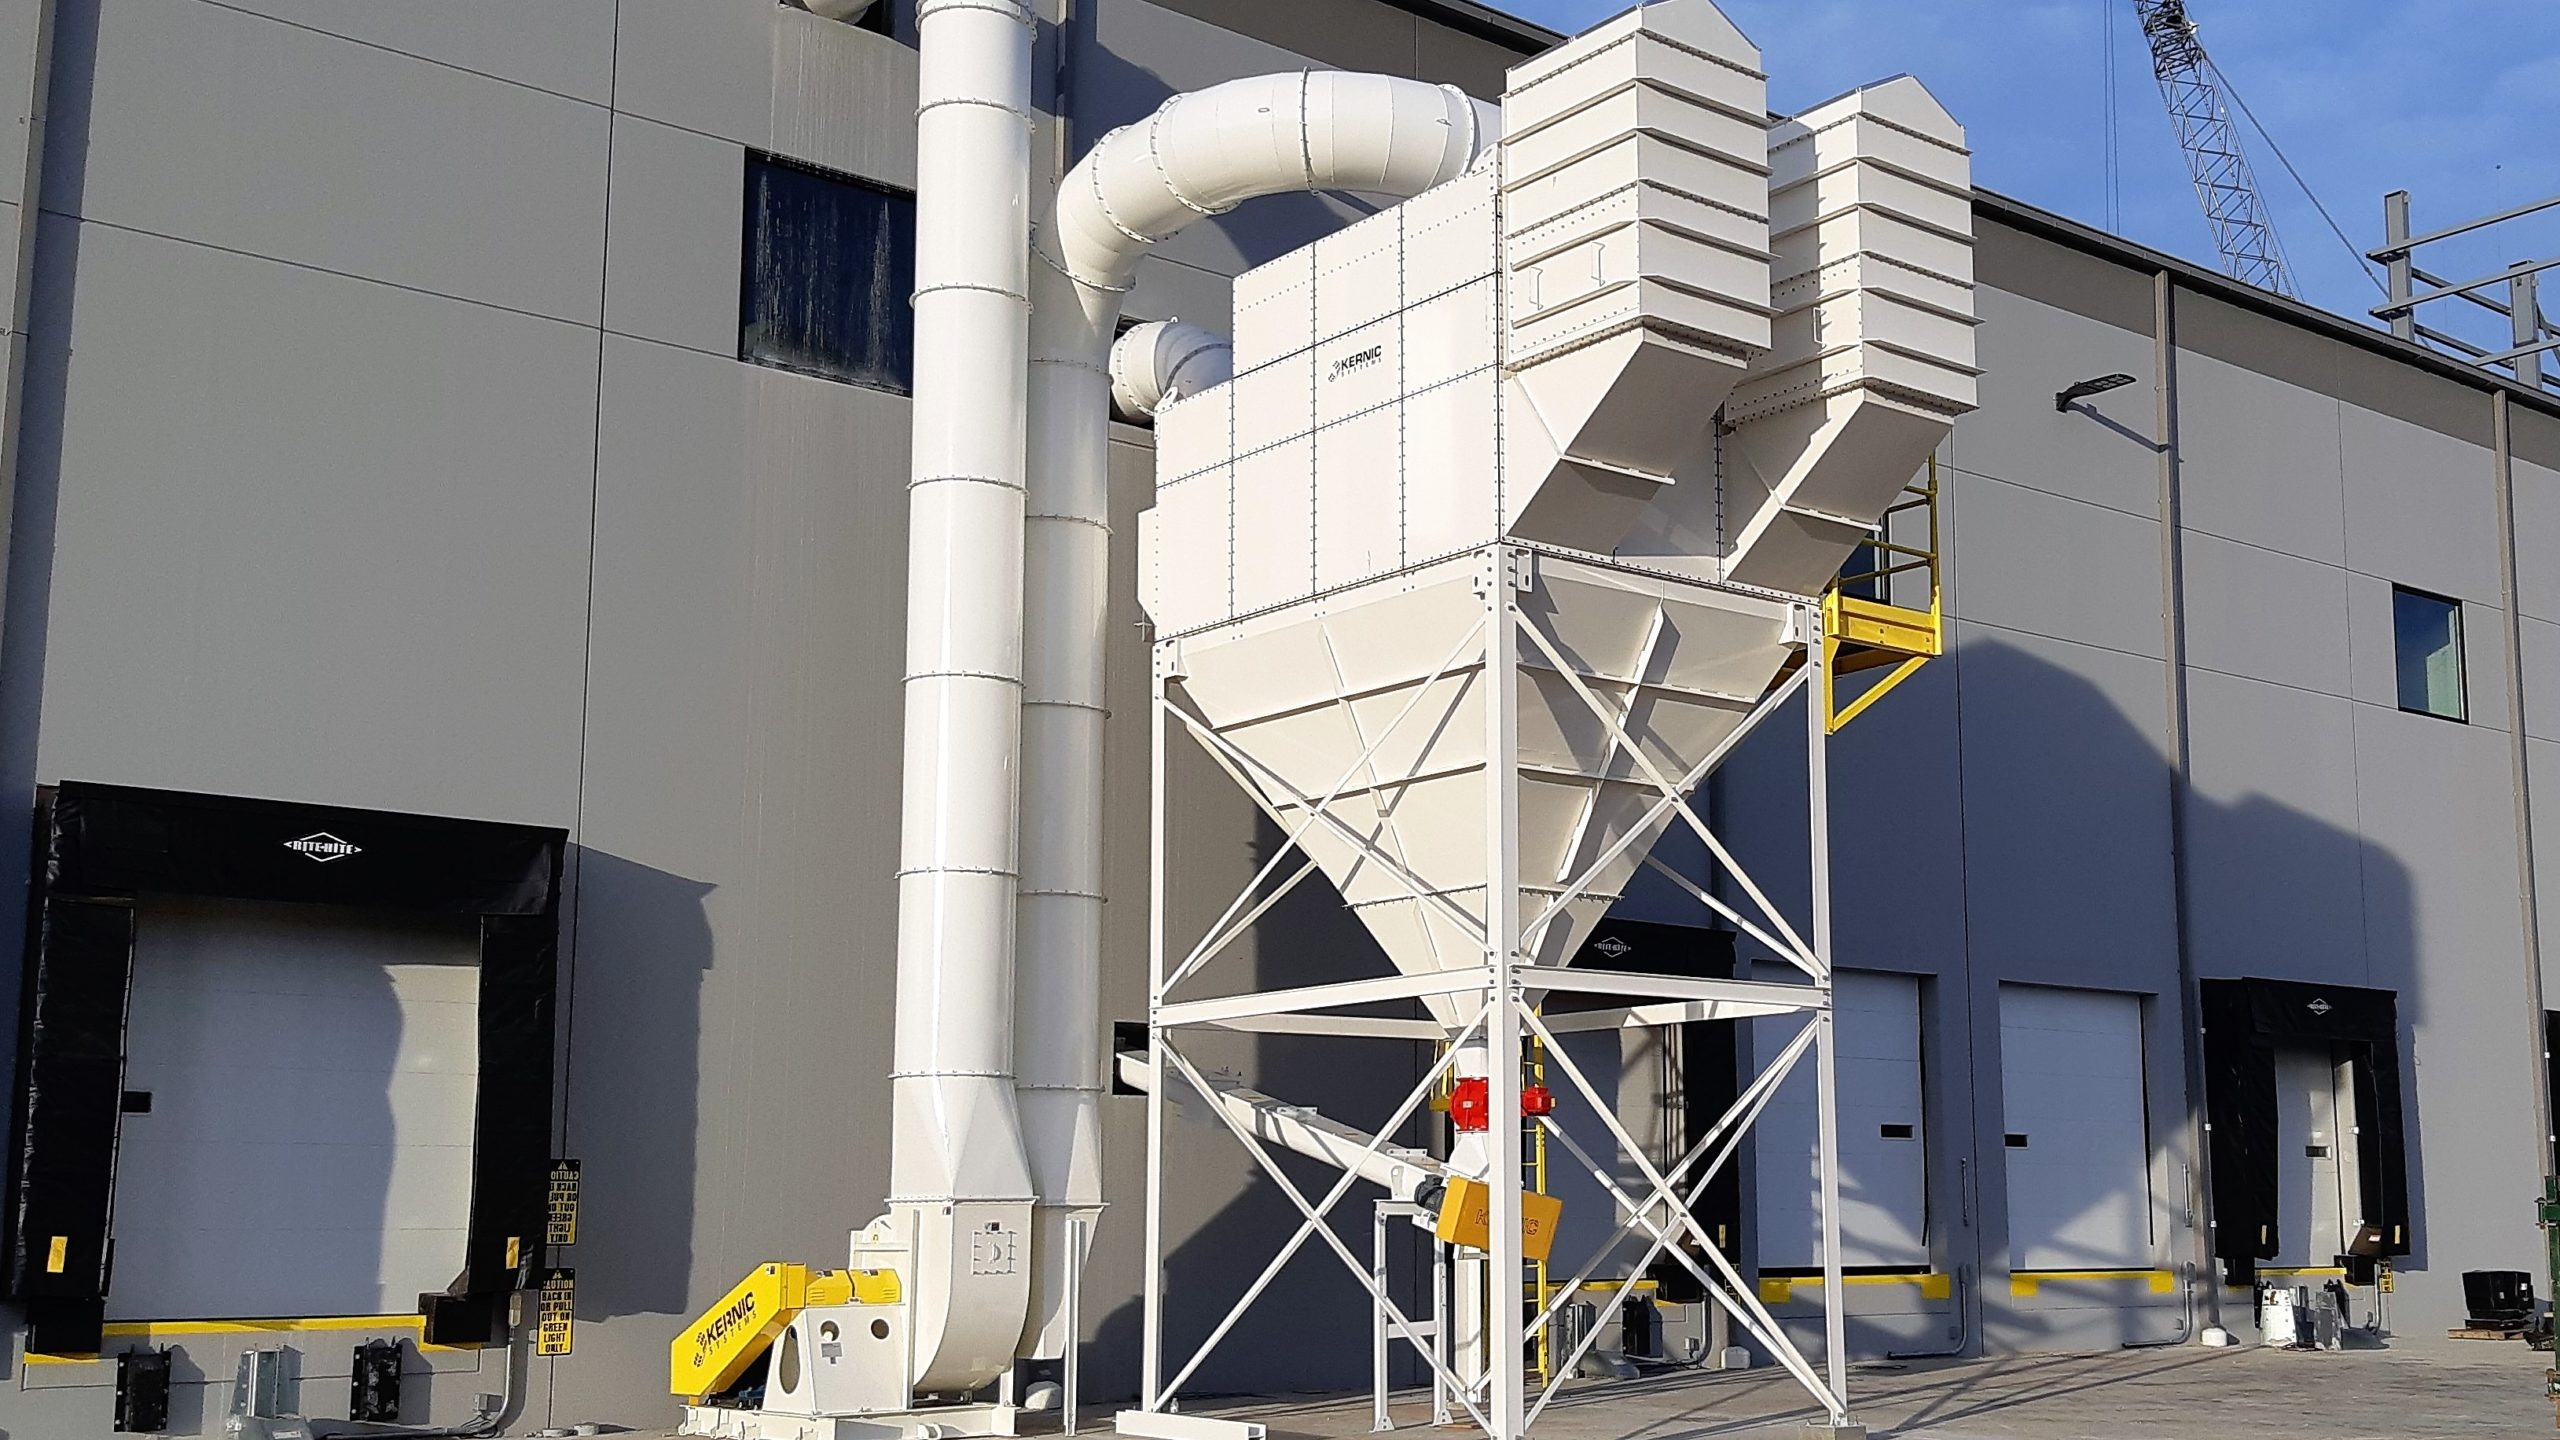 Airex DCCH dust collector